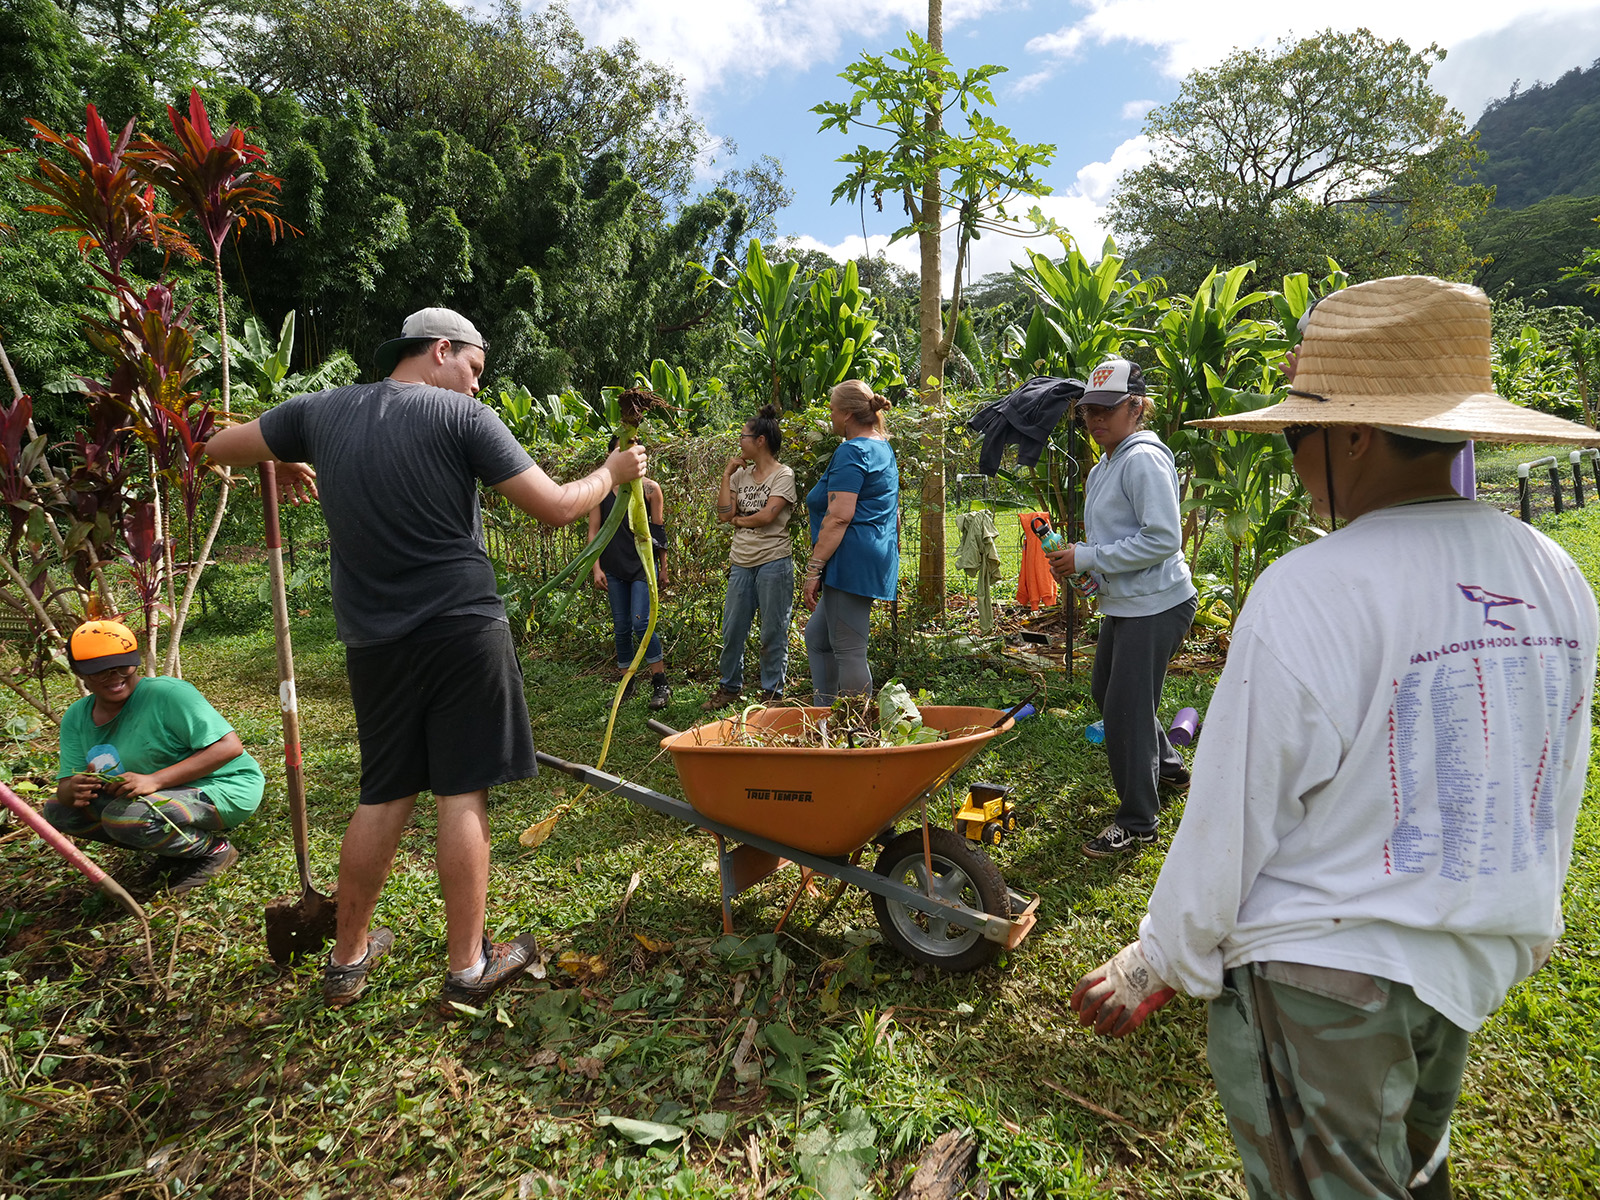 <p>Volunteers converge on Ho'oulu Aina garden for community work days every Wednesday and Thursday. Kokua Kalihi Valley employs 180 people fluent in 20 Asian and Pacific Island languages and dialects working out of nine locations.</p>